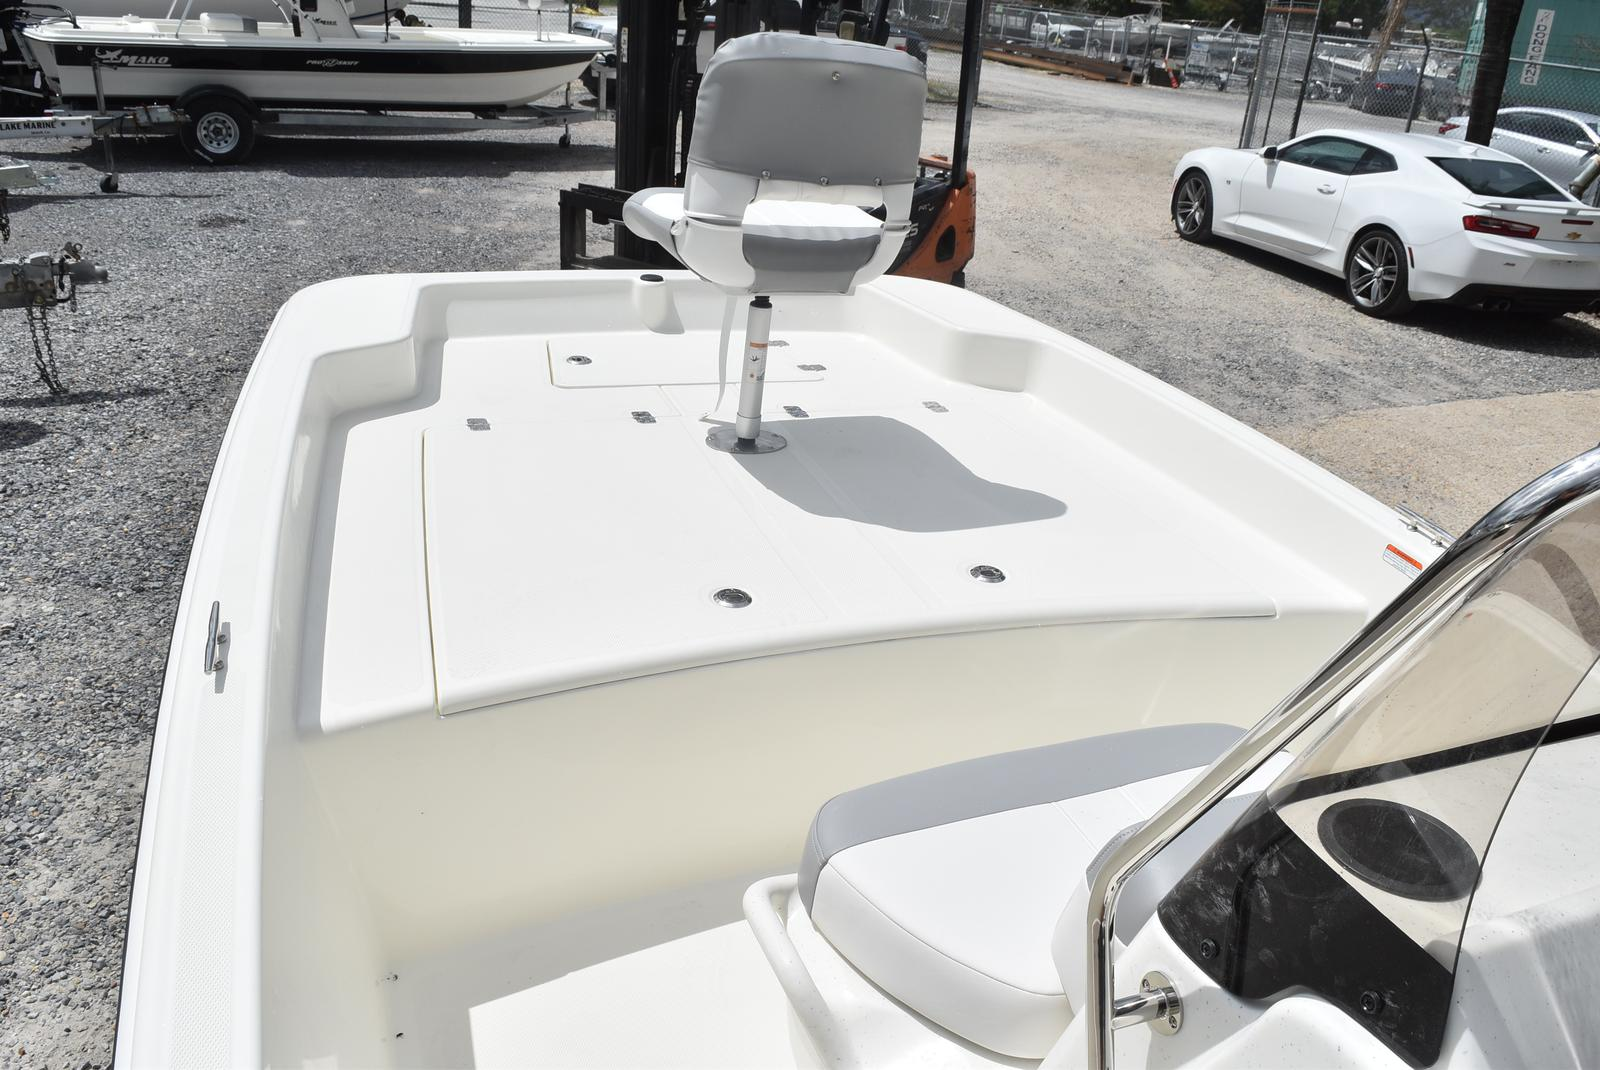 2020 Mako boat for sale, model of the boat is Pro Skiff 17, 75 ELPT & Image # 422 of 702